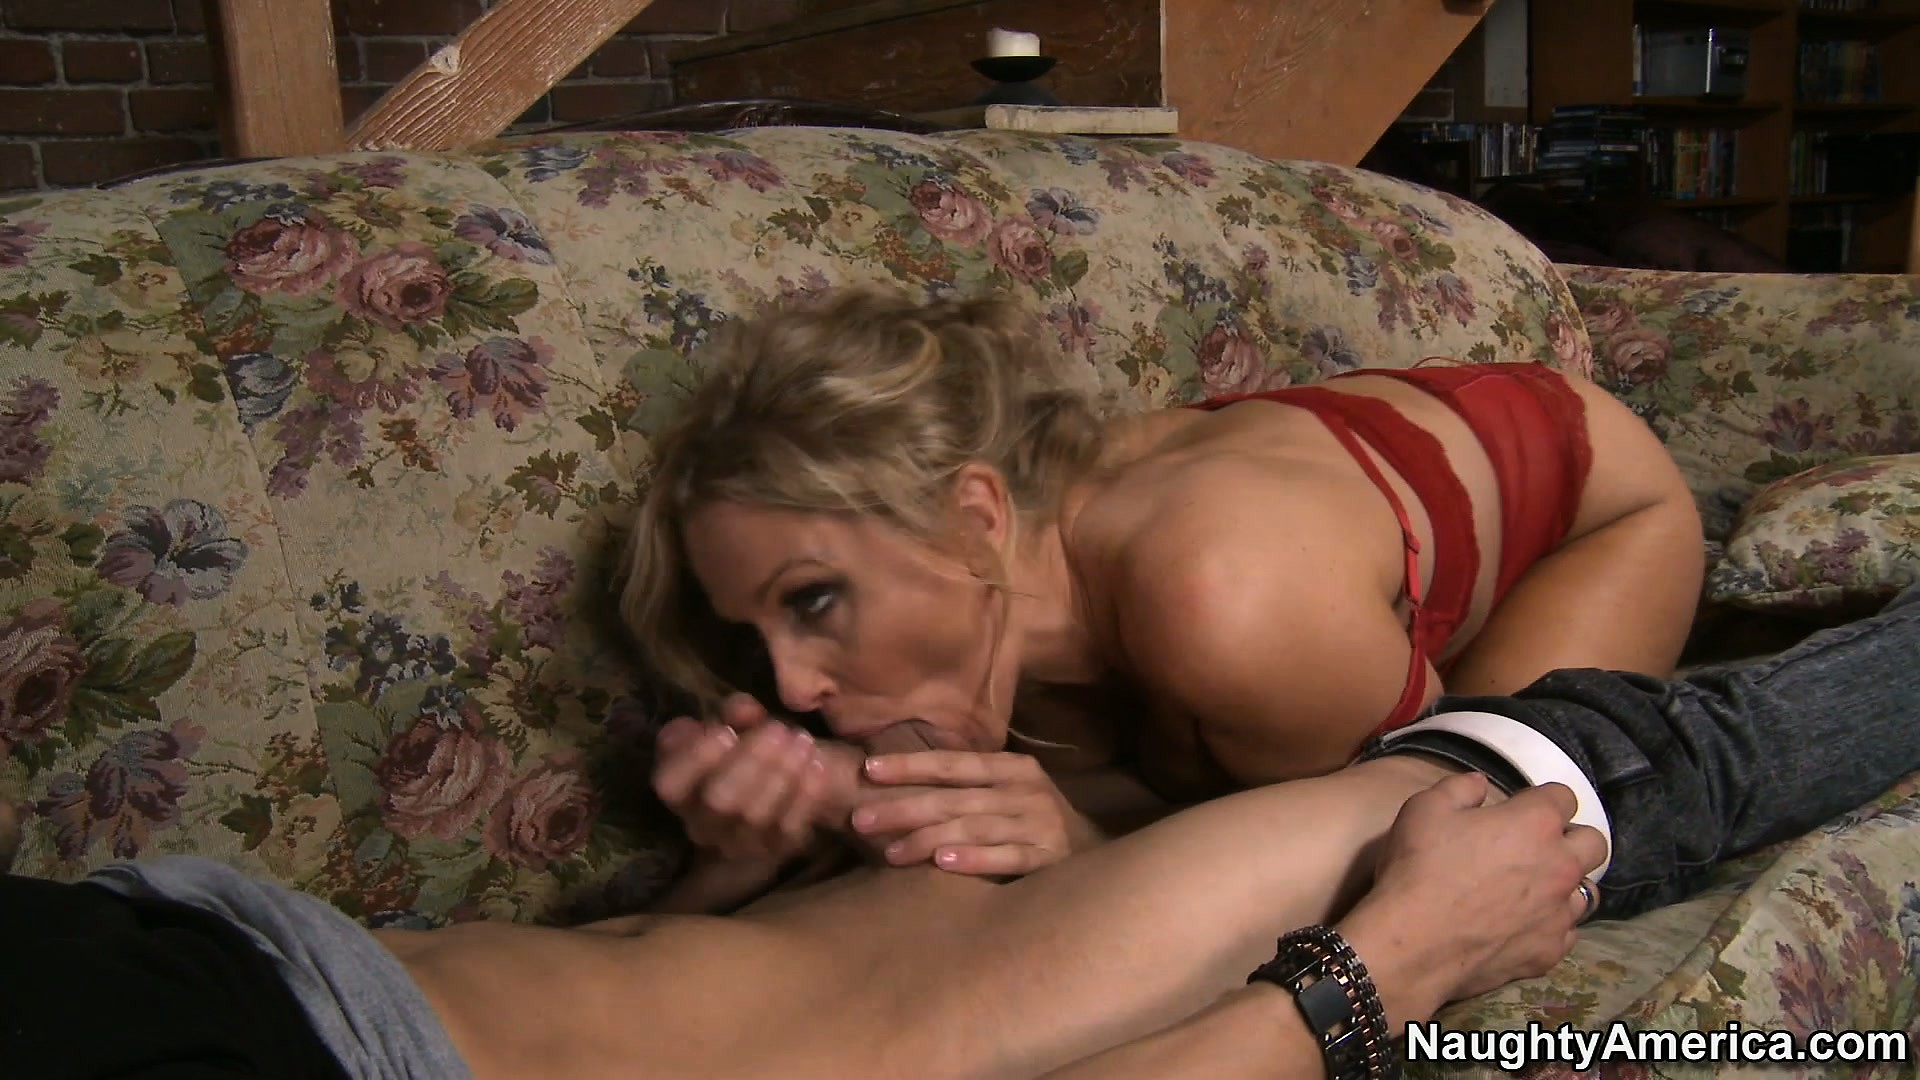 Porno Video of Julia Ann Pops Her Beautiful Knockers Out Of Restrictive Red Bra